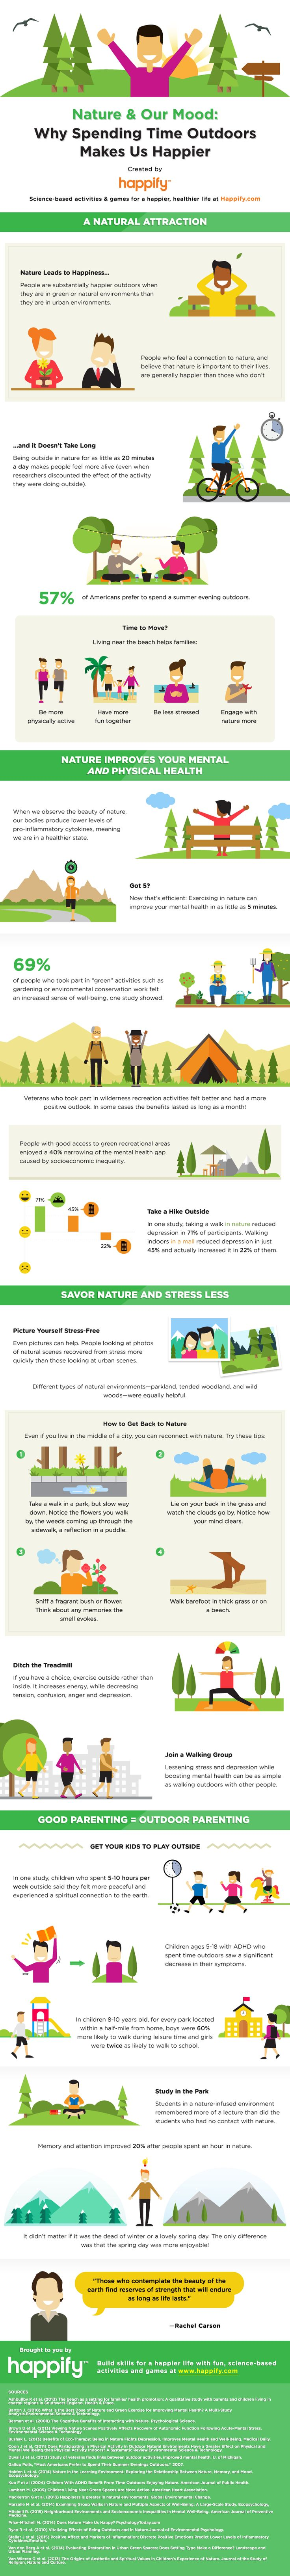 """Want to Be Happier? Get Outside! """"Why Spending Time Outdoors Makes Us Happier"""" + How to Get Back to Nature --- """"Those who contemplate the beauty of the earth find reserves of strength that will endure as long as life lasts."""" Rachel Carson"""